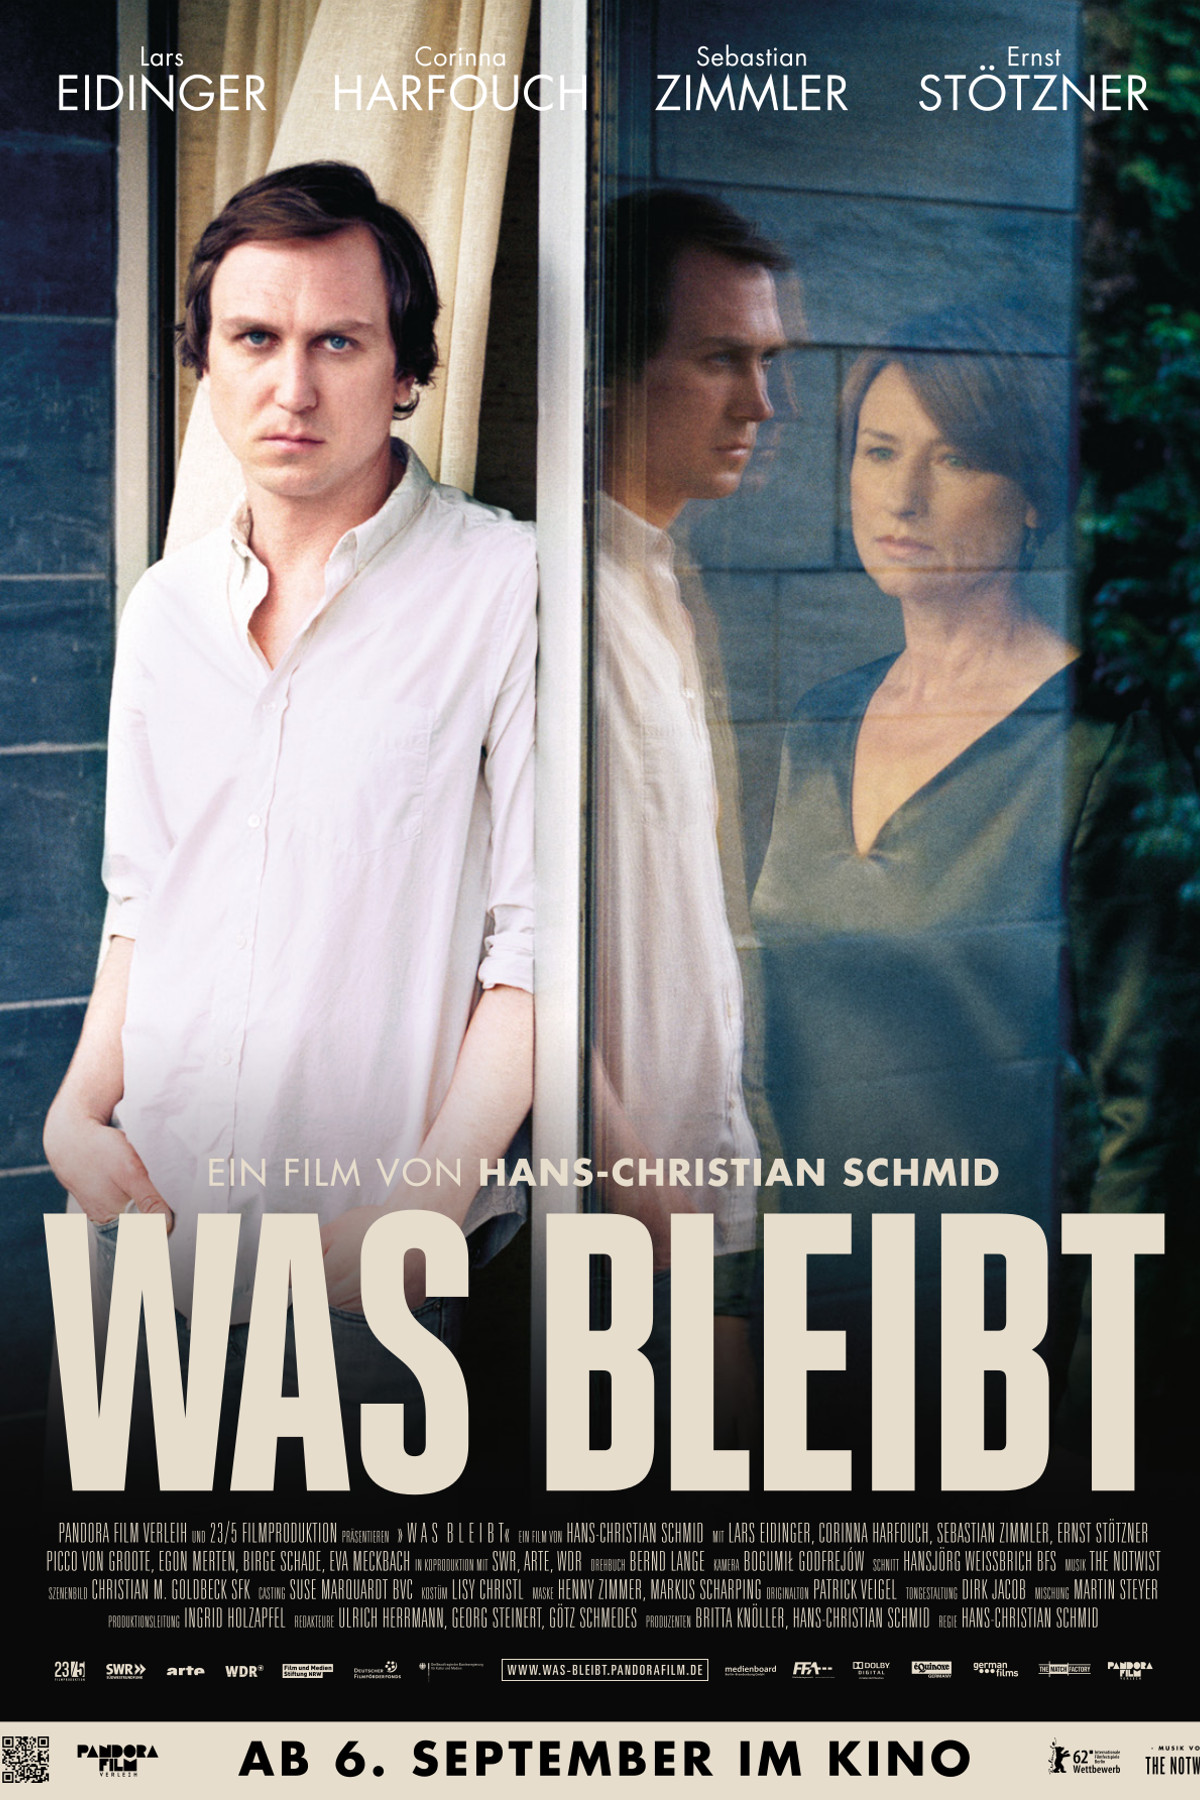 2012_Was_bleibt_23_5_Filmproduktion.jpg